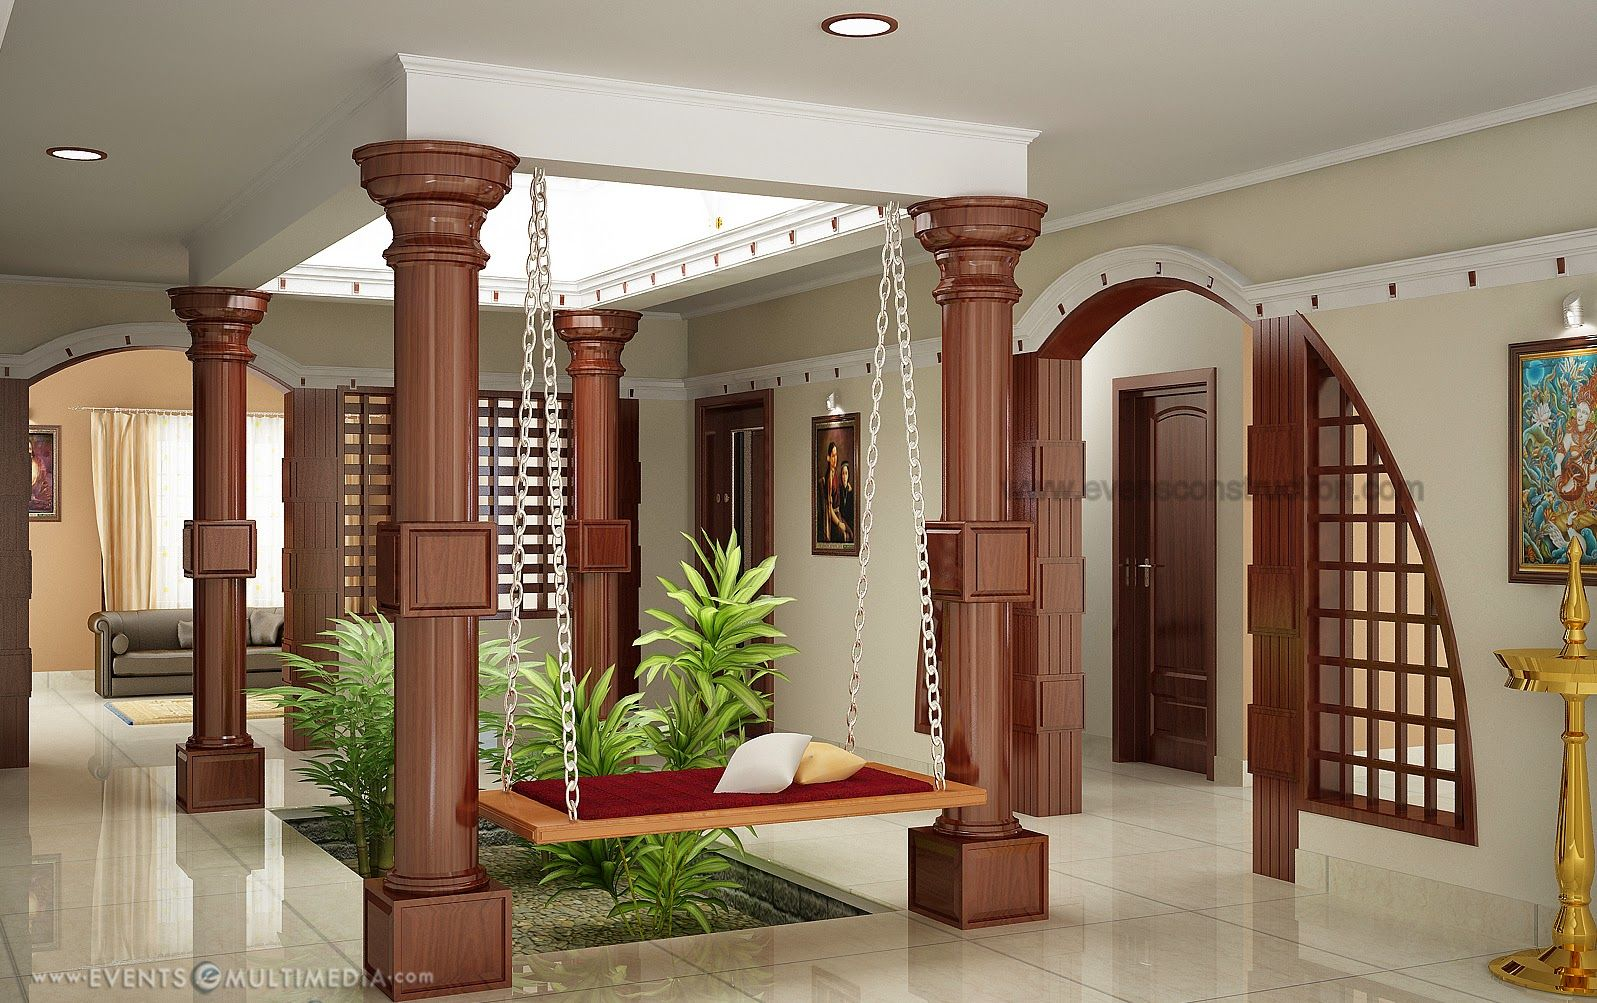 Interior Design Kerala Google Search Inside And Outside Pinterest Kerala Interiors And